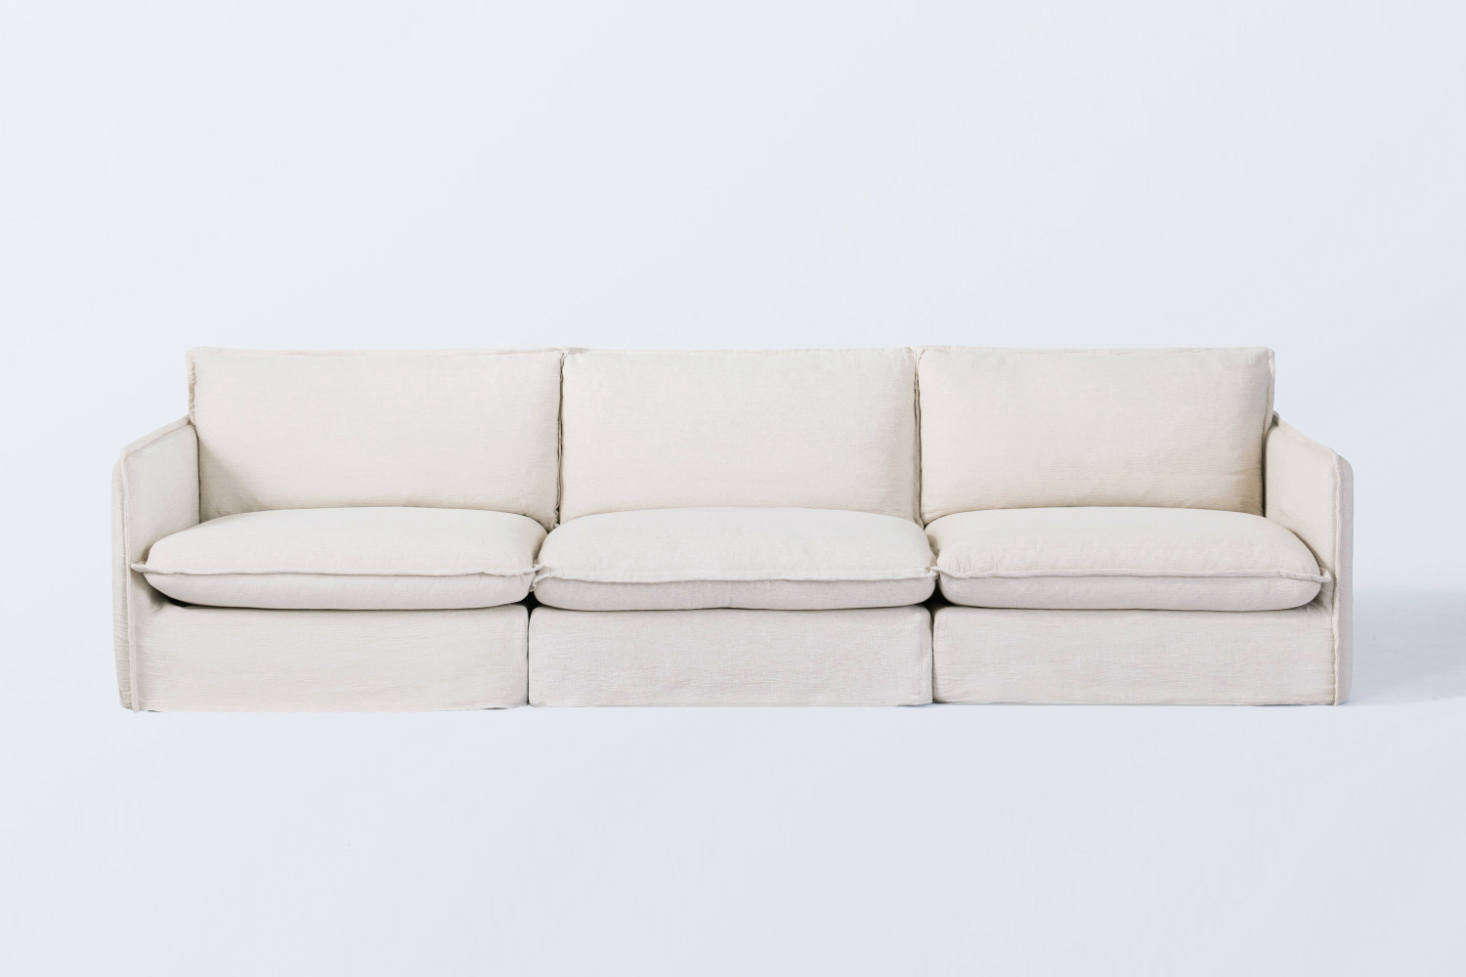 Sofa Couch Sofas How To Buy A Couch Or Sofa That Will Last Expert Advice